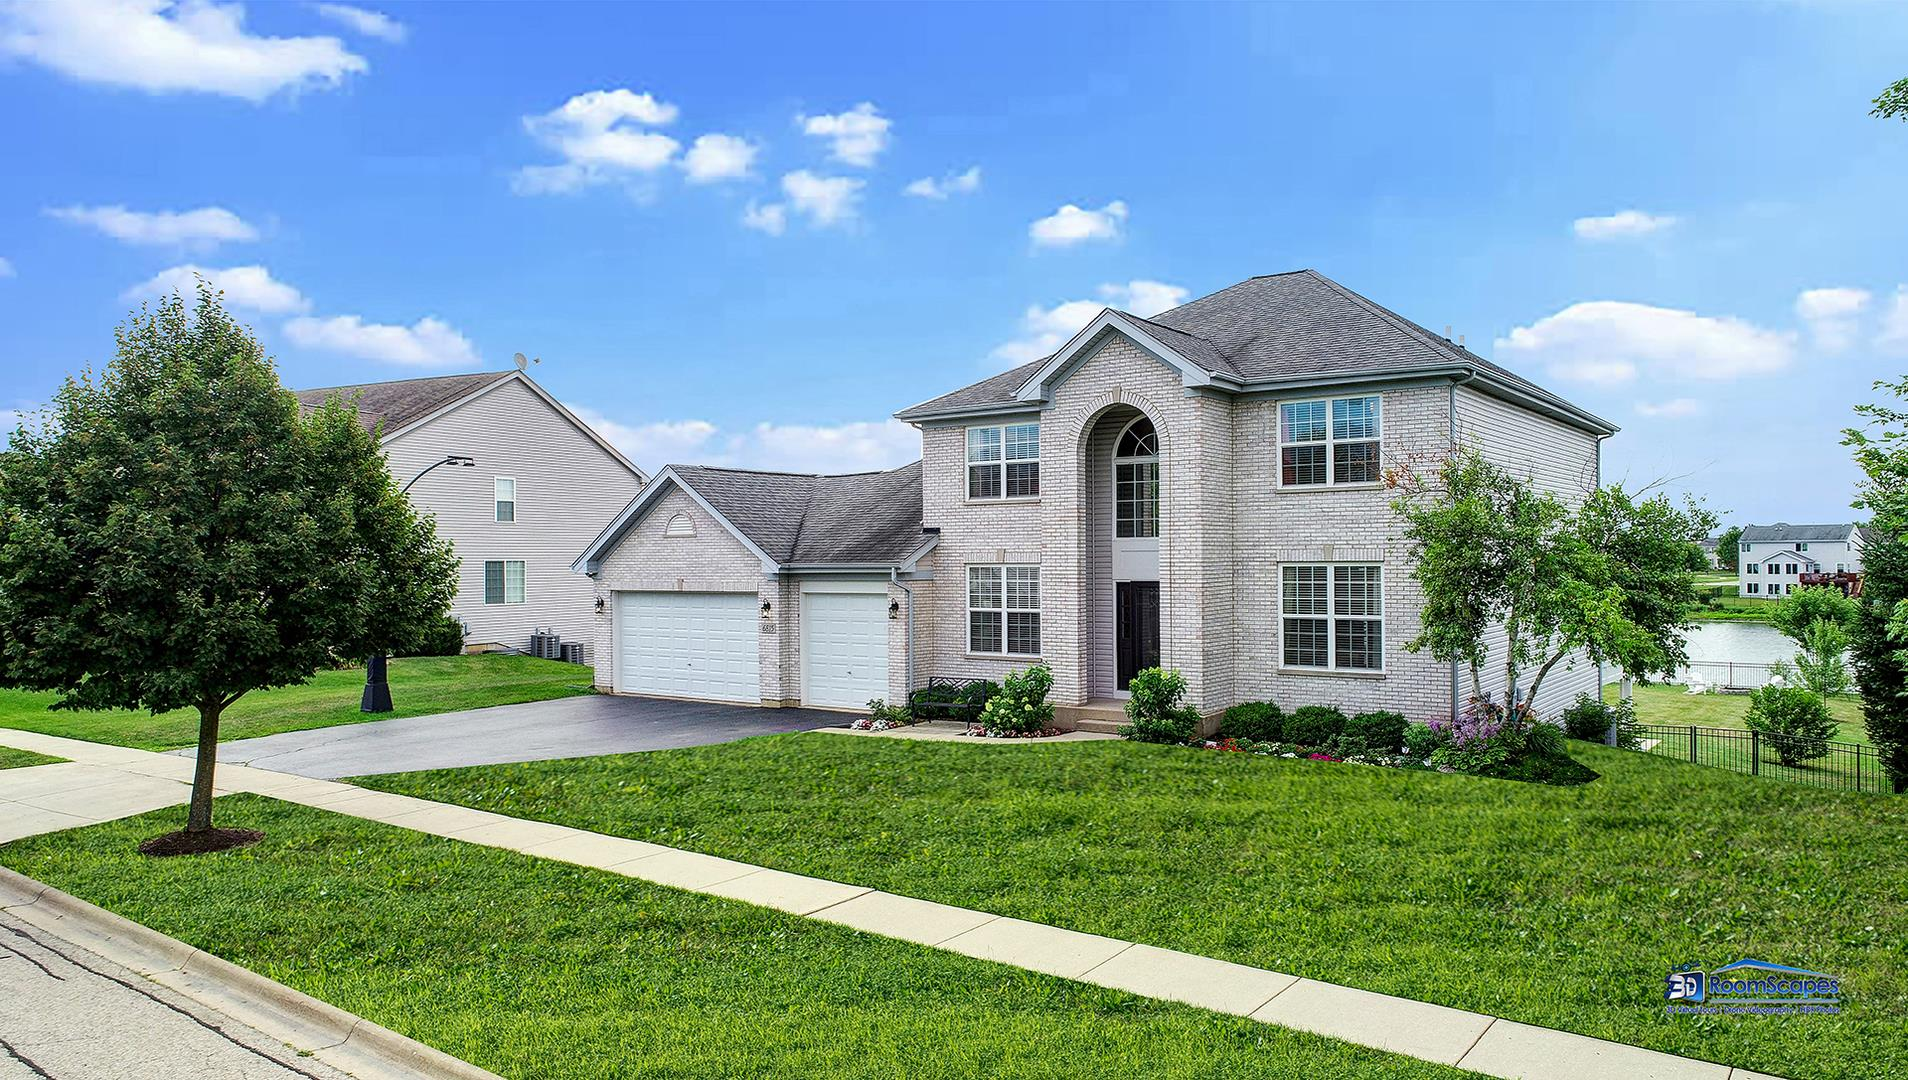 6815 Waterford Drive, McHenry, IL 60050 - #: 10791942